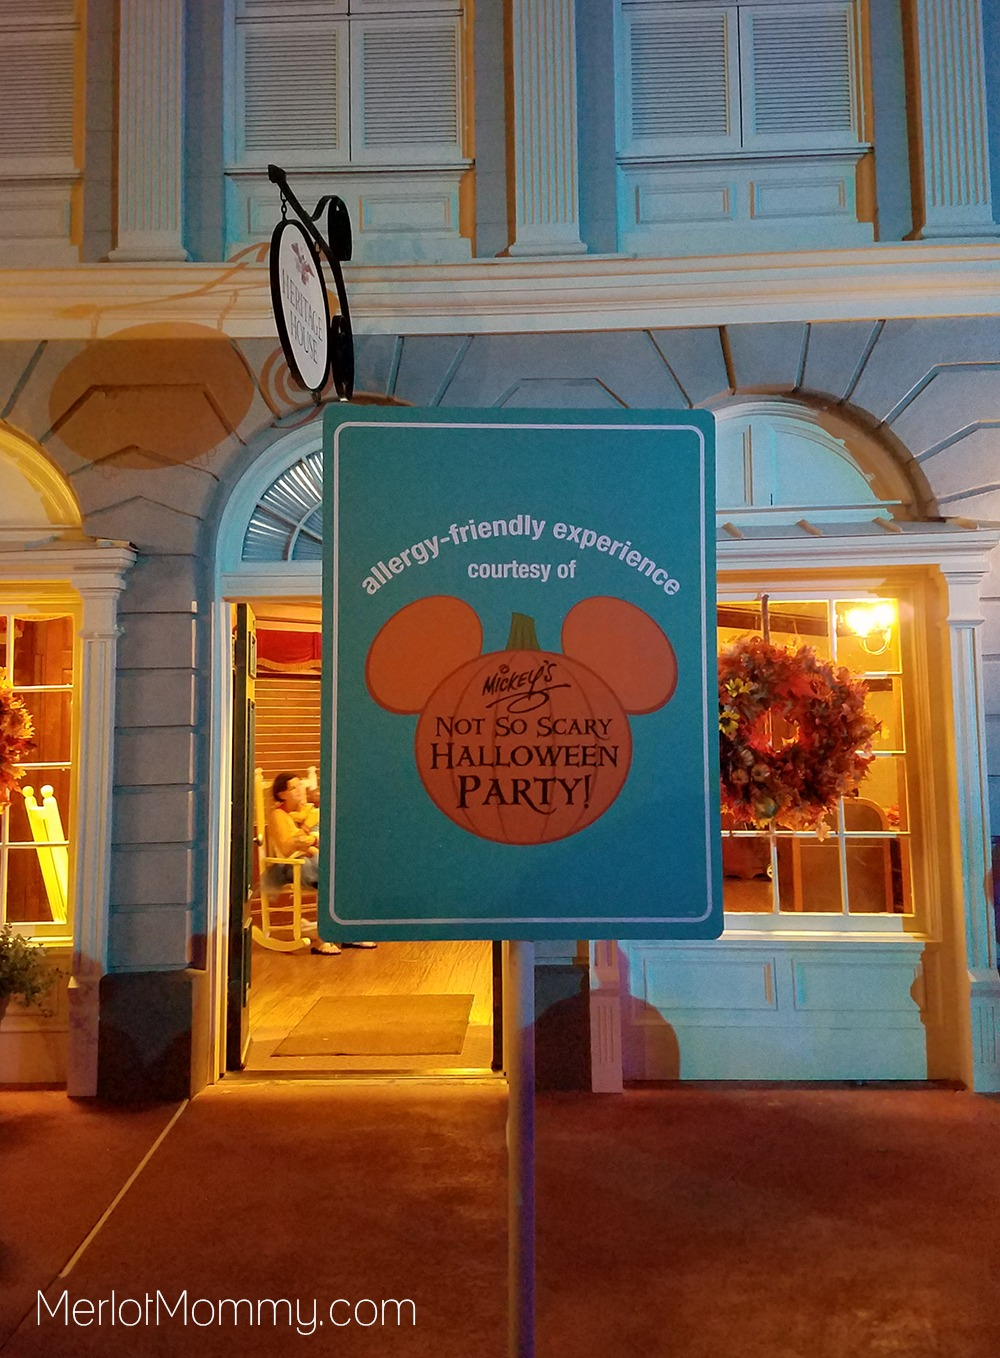 allergy friendly experience sign at Magic Kingdom